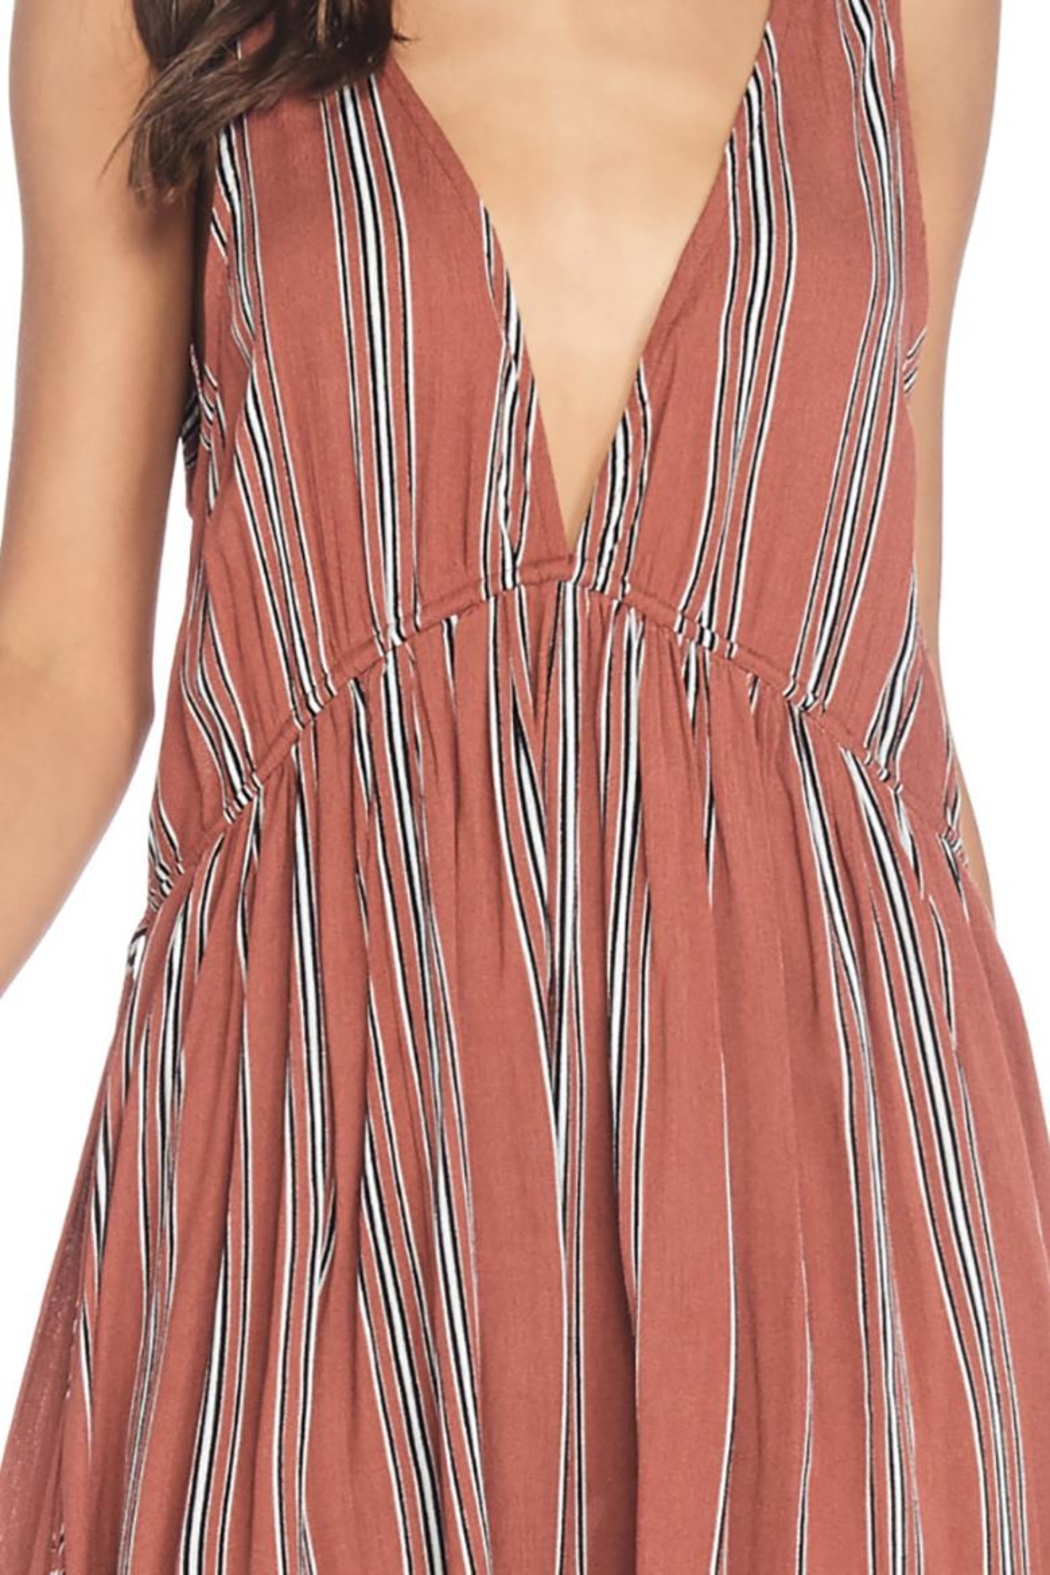 Anama Plunging Striped Dress - Side Cropped Image